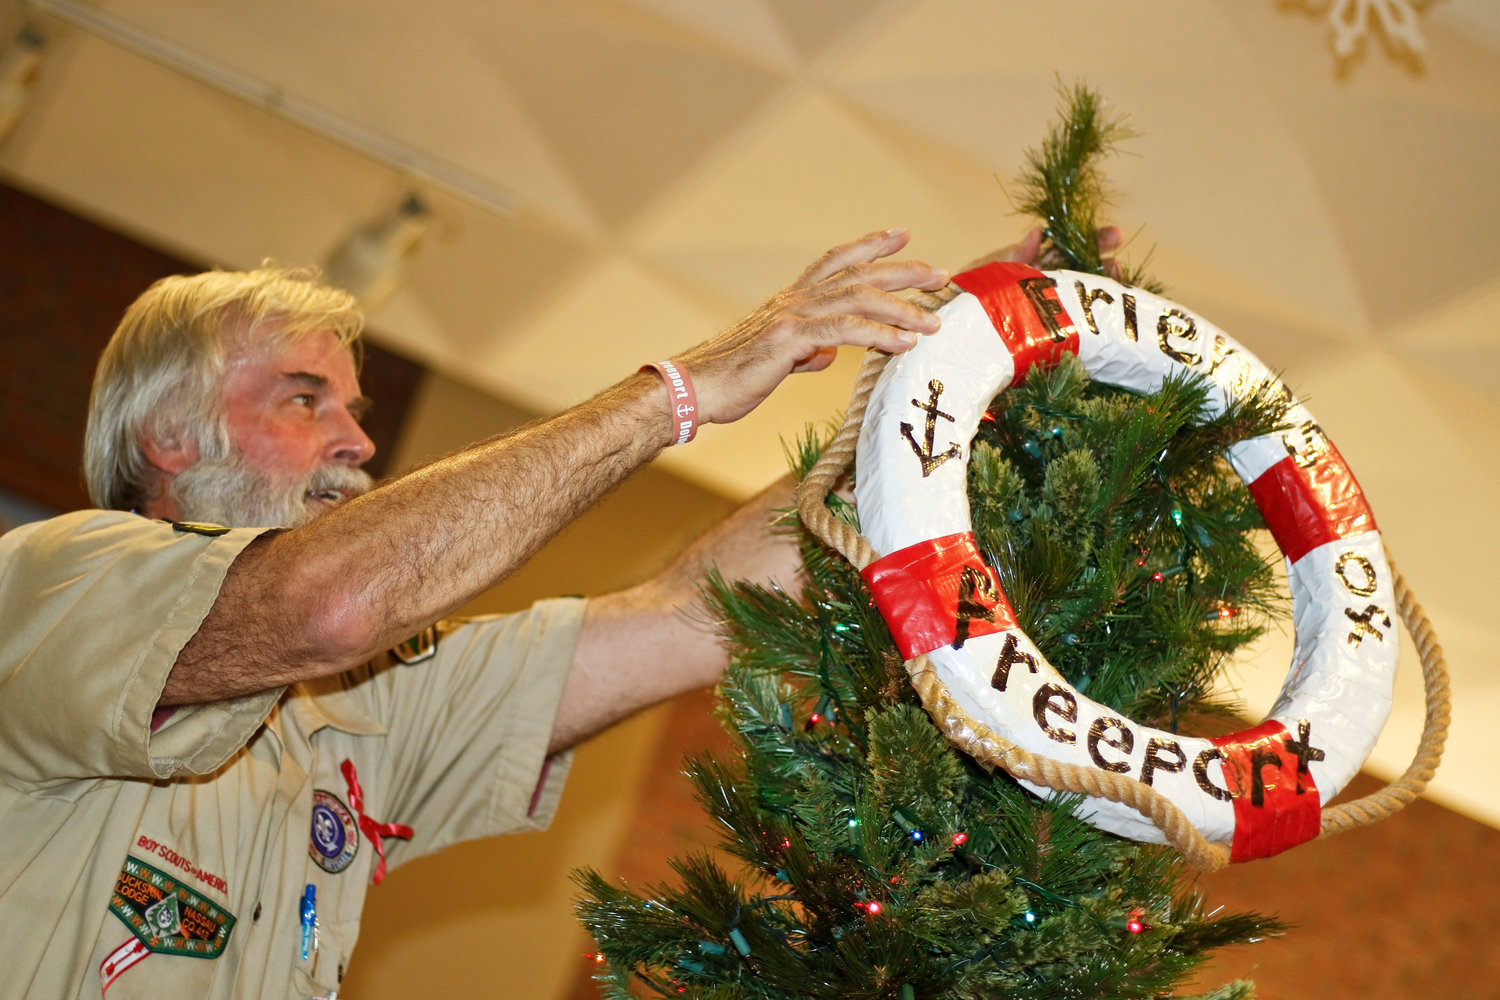 Friends of Freeport and Boy Scout Troop 36 leader Kurt Corelo helped decorate both trees but his height helped when topping the tree with a personalized life preserver.